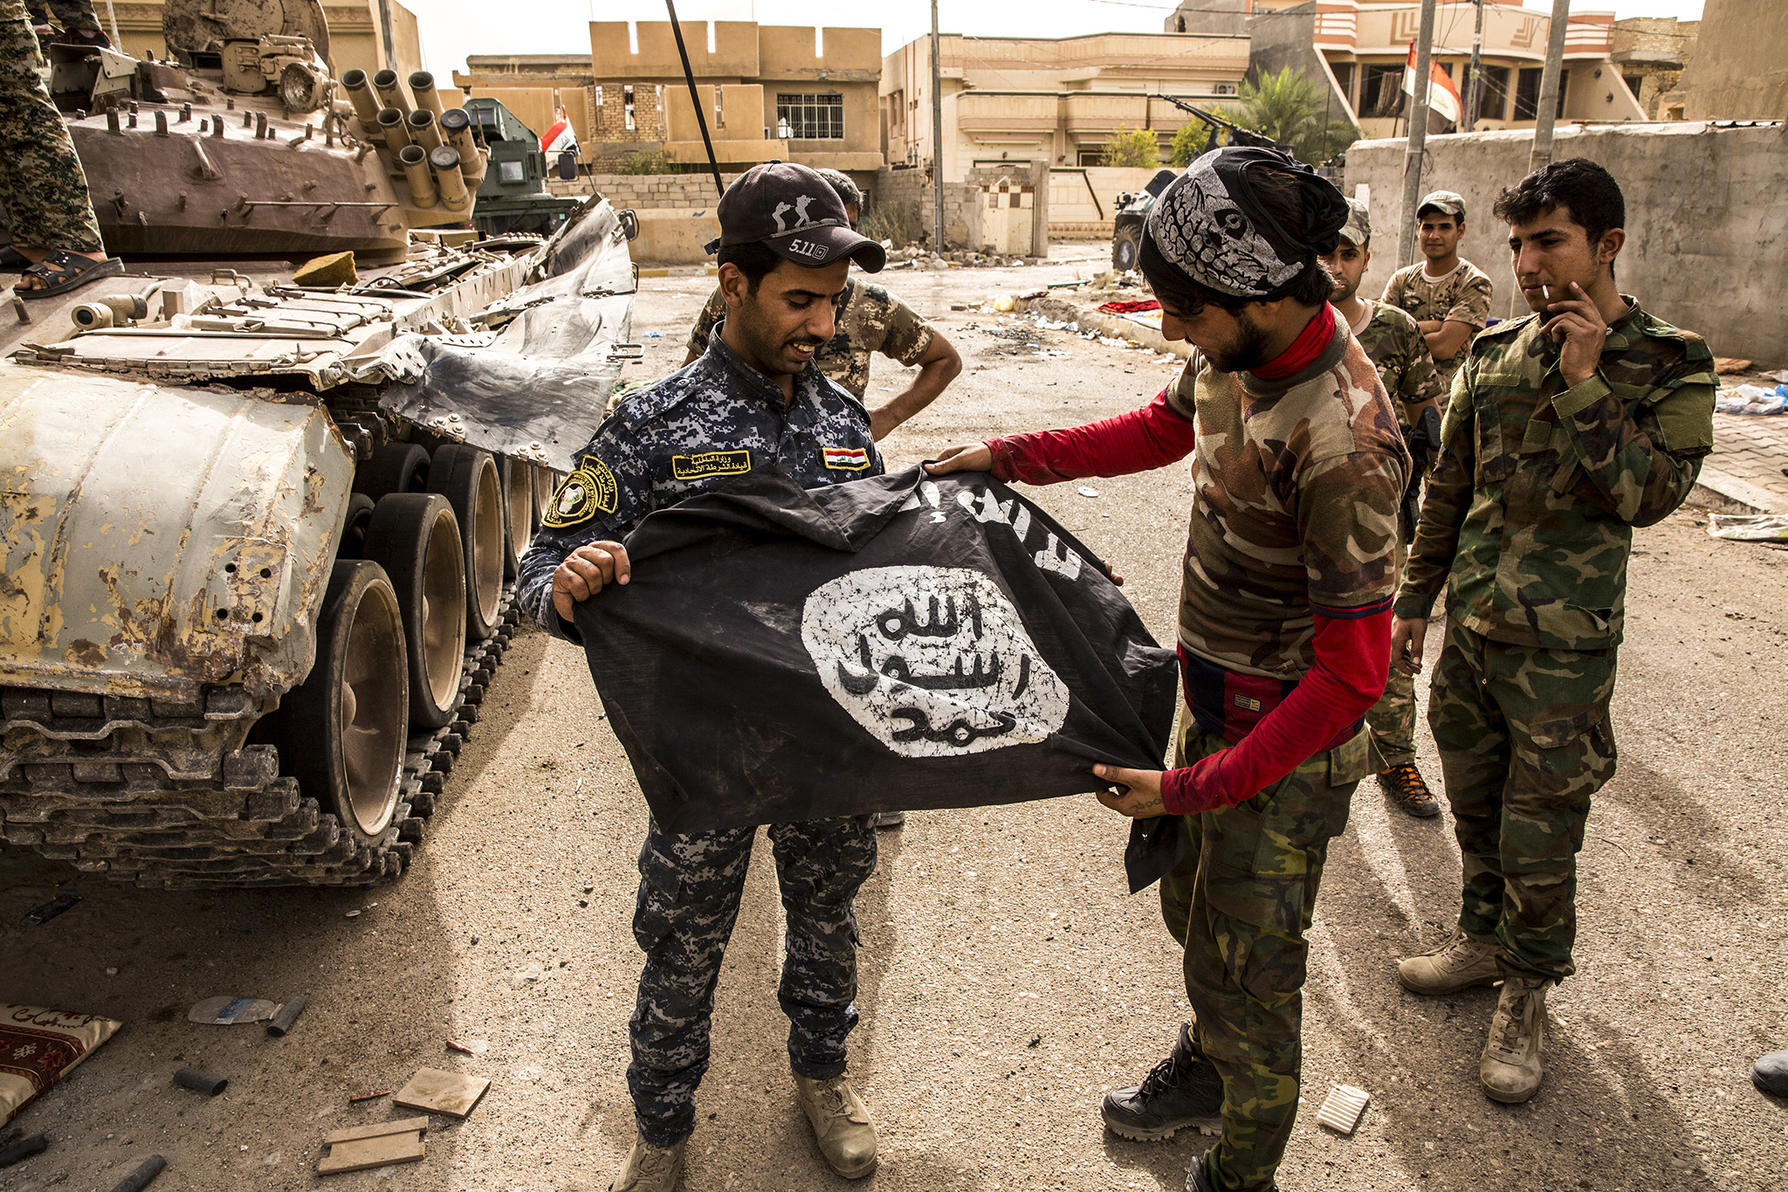 A member of the Iraqi federal police, left, and forces loyal to the Iraqi government displayed a captured Islamic State flag in the Nazal district of Fallujah, Iraq. (Bryan Denton/The New York Times)